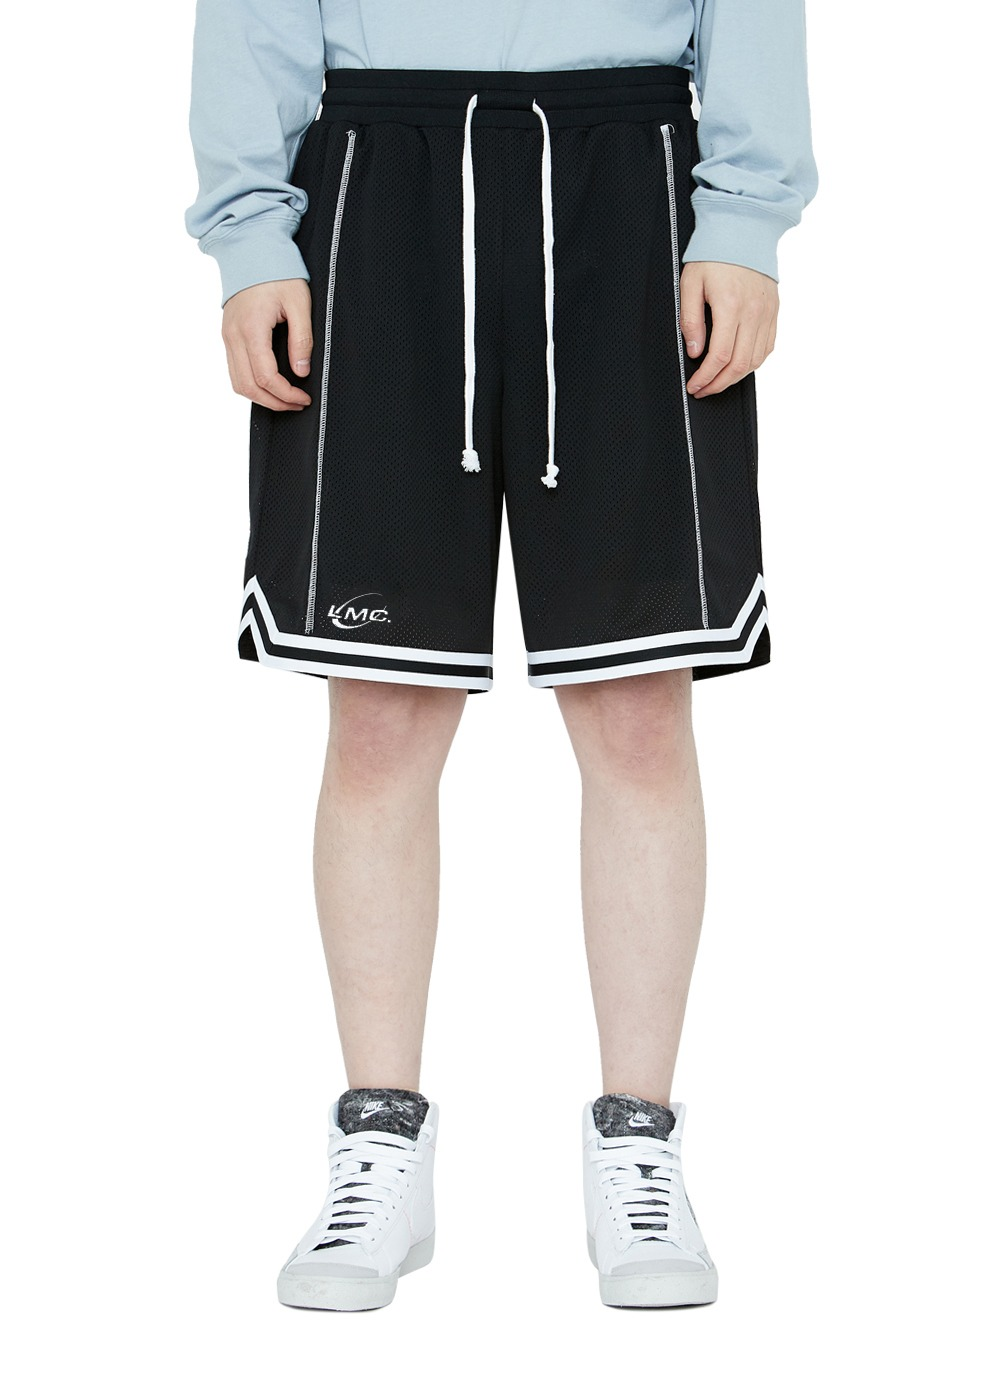 LMC PLANET BASKETBALL SHORTS black